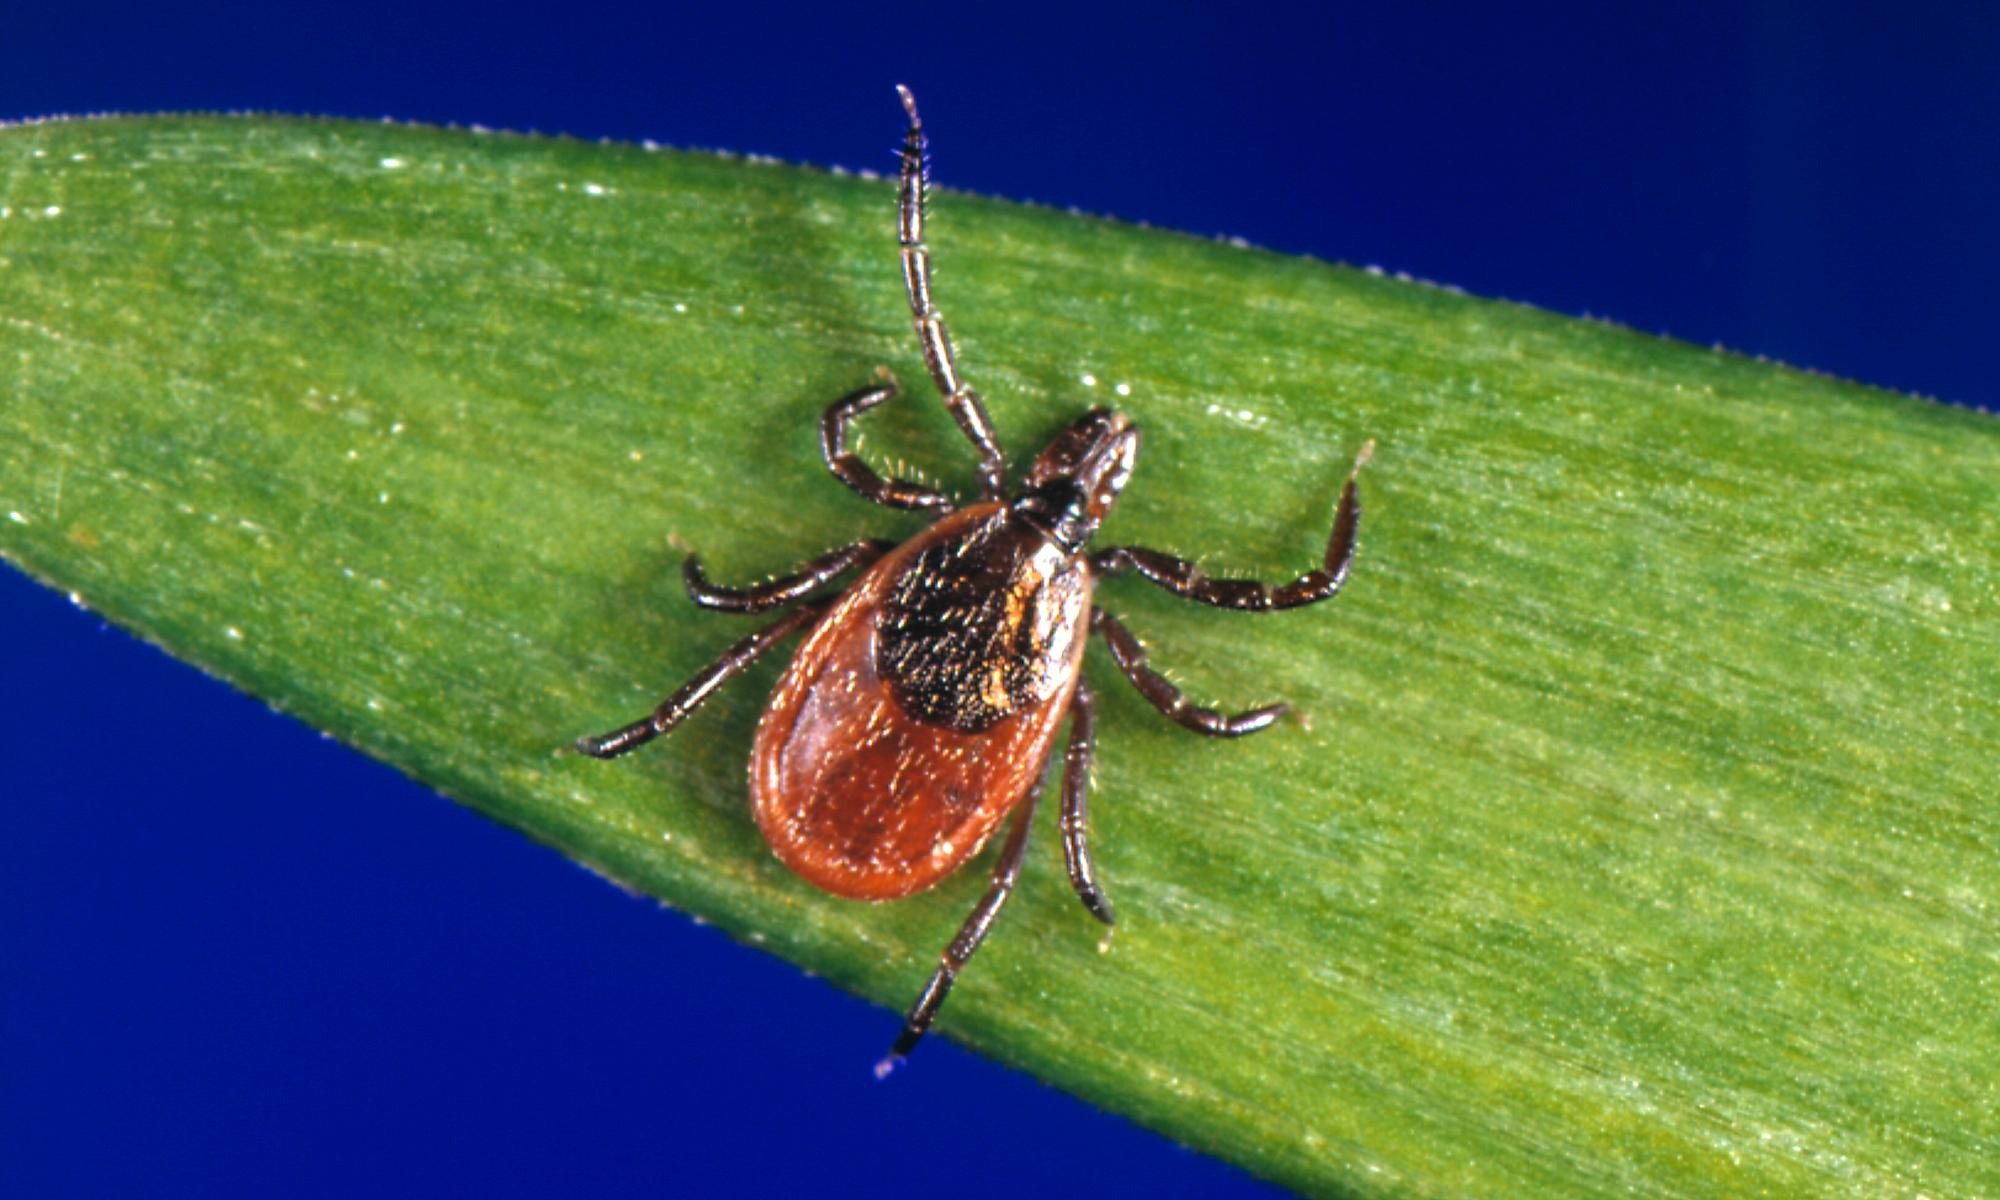 Forget Ebola, Sars and Zika: ticks are the next global health threat